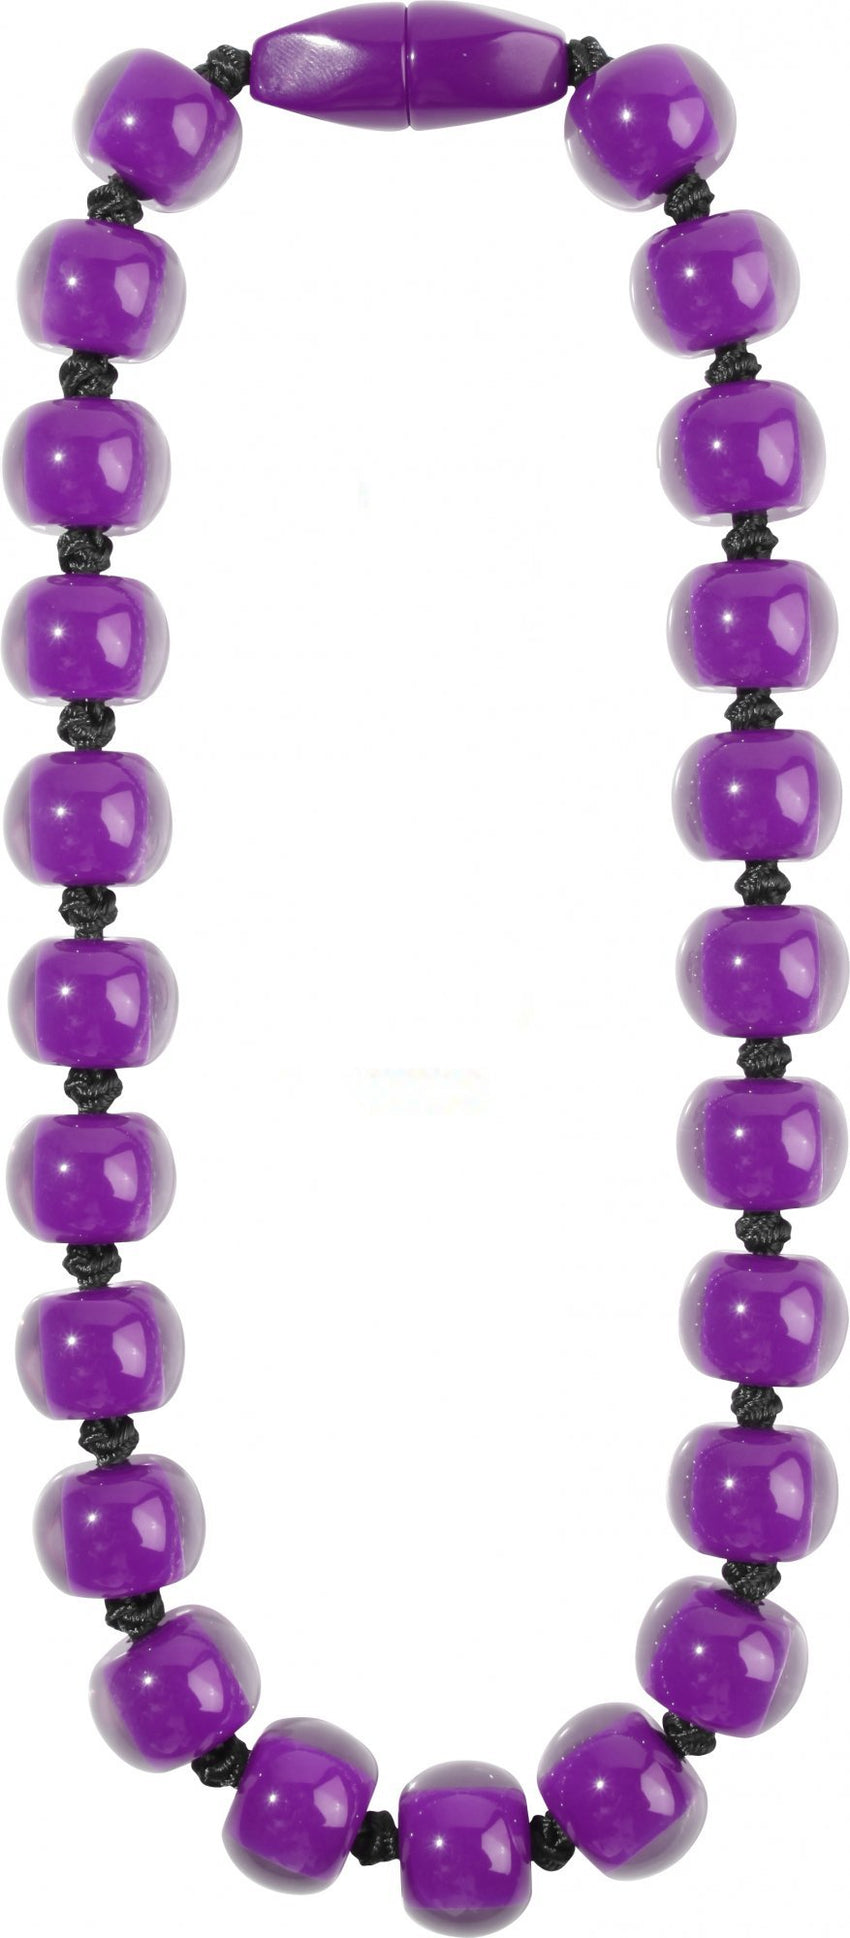 40101189018Q23 Colourful Beads Purple Bead Black Cord 9018 Q23